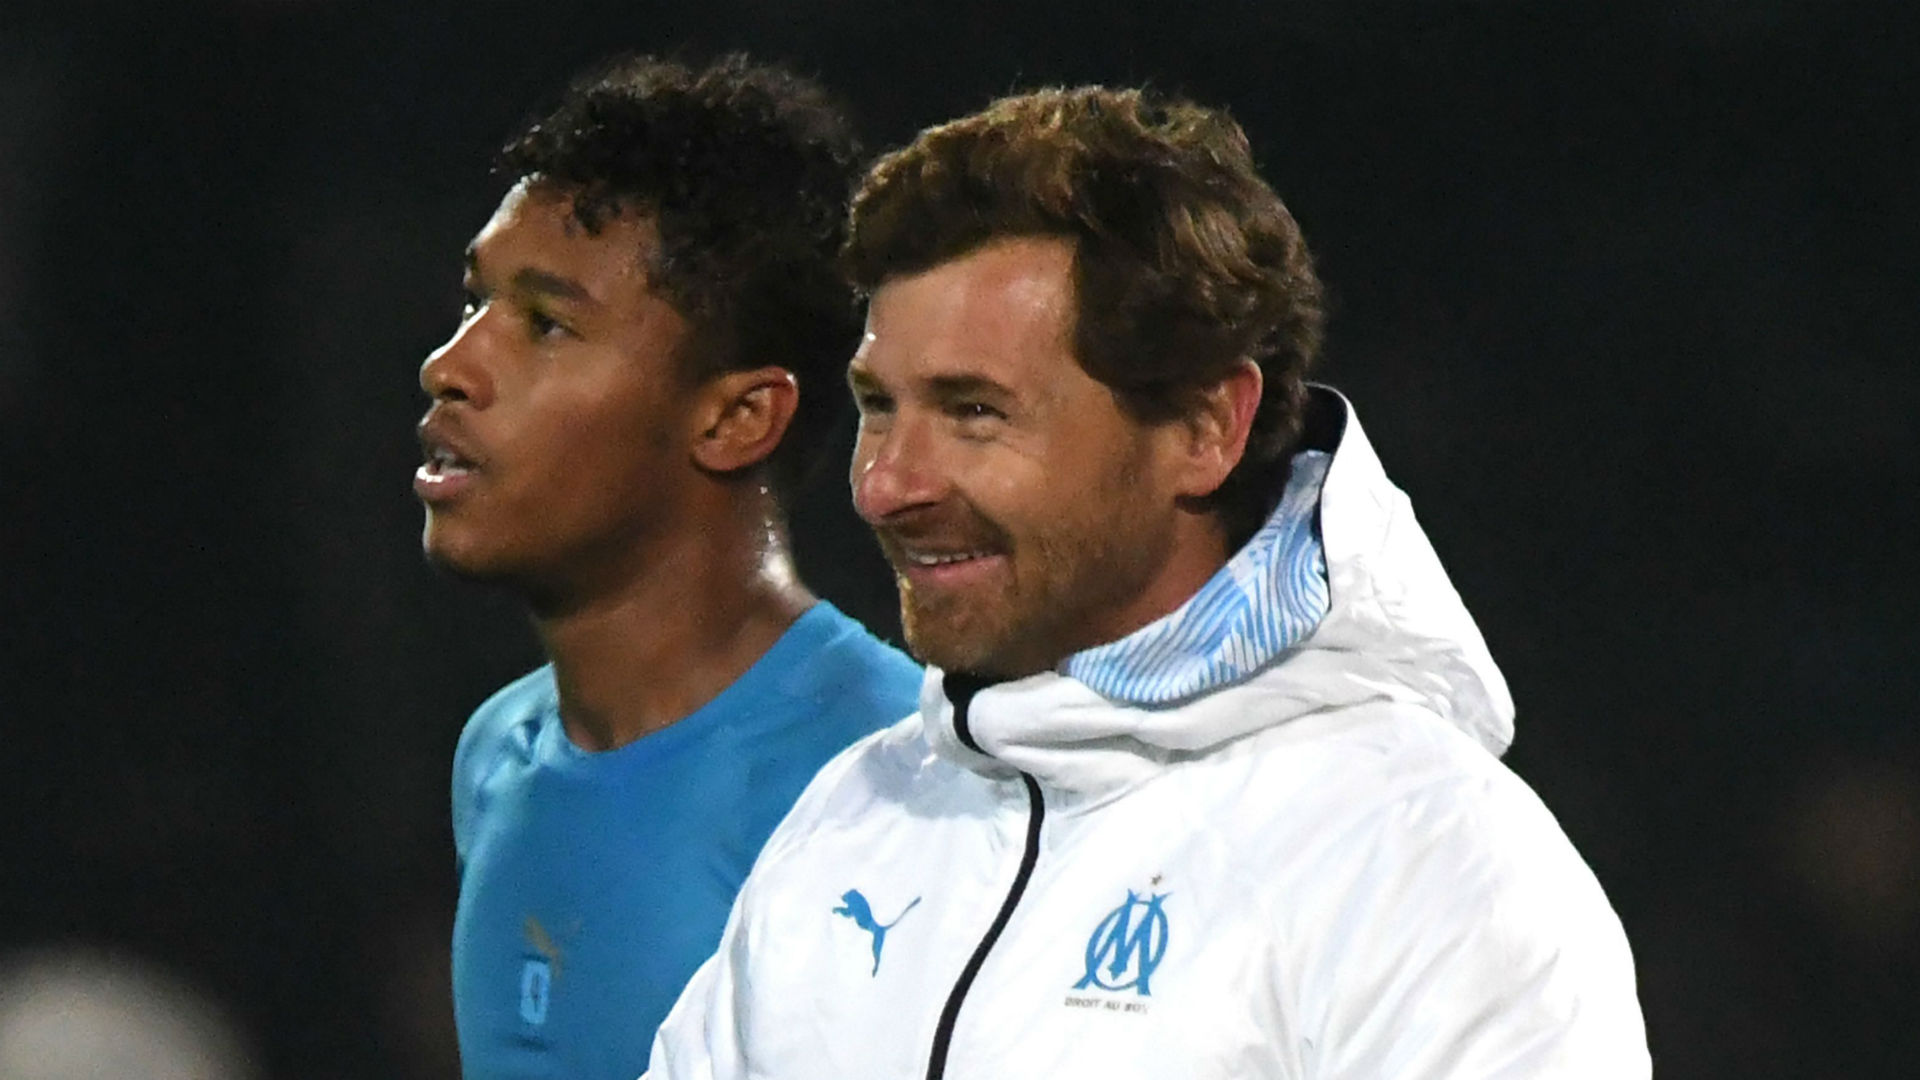 Marseille coach Villas-Boas hopes to return to Dakar Rally within five years